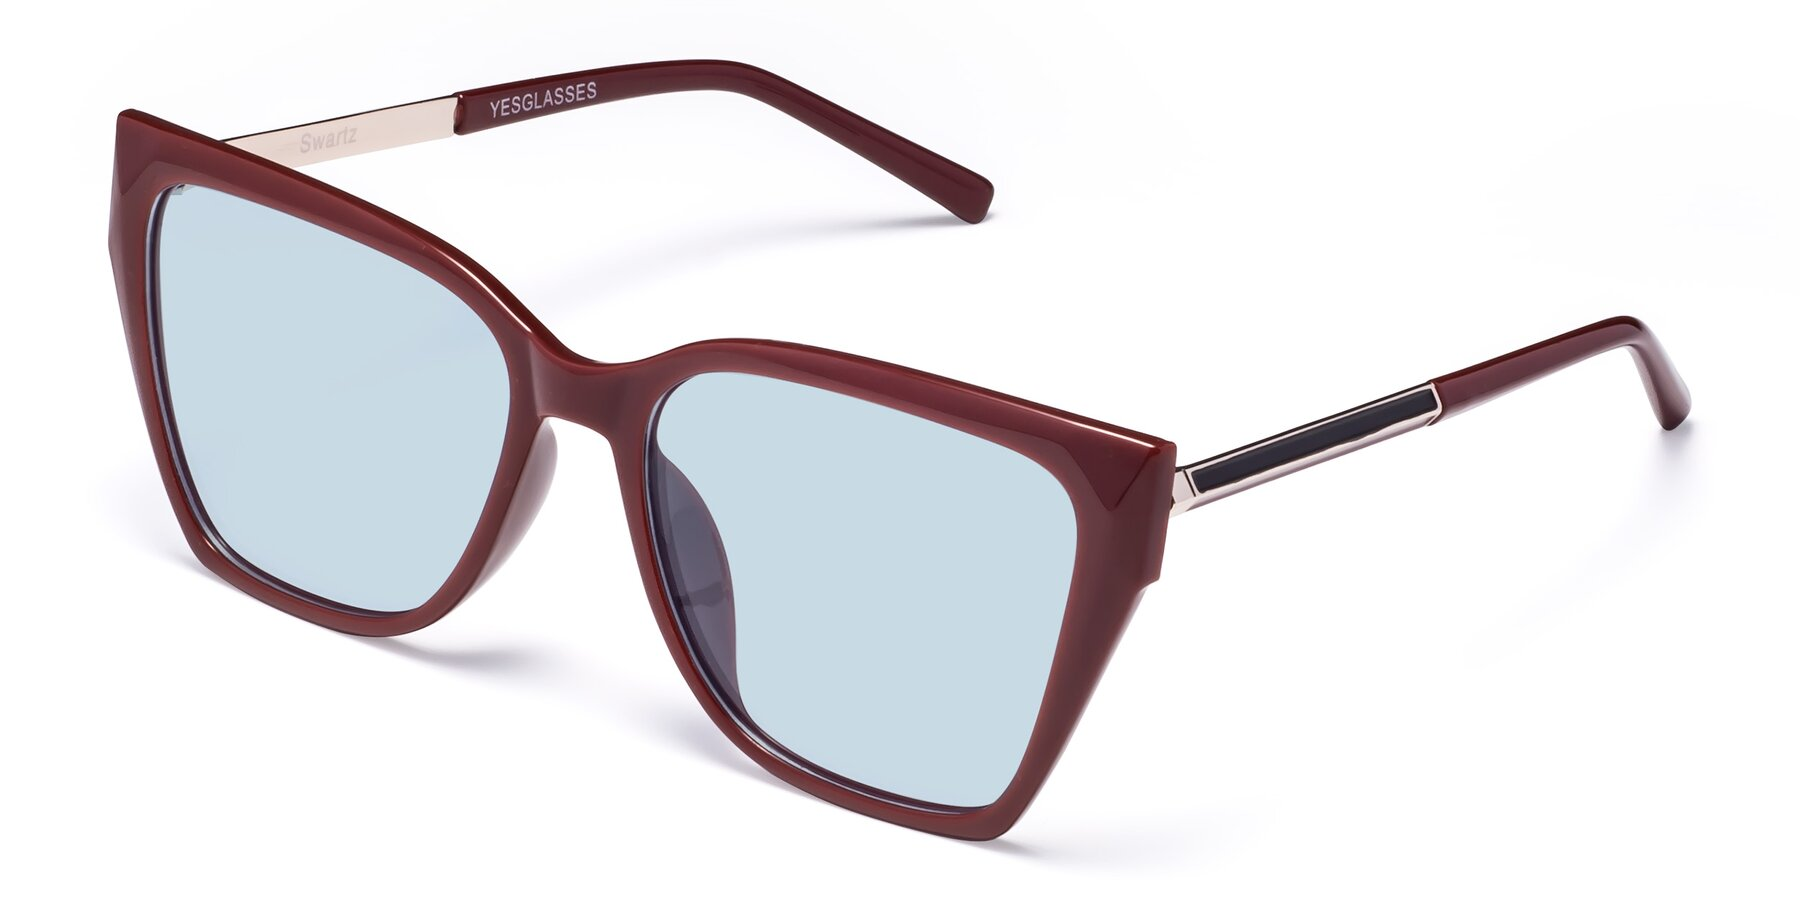 Angle of Swartz in Wine with Light Blue Tinted Lenses